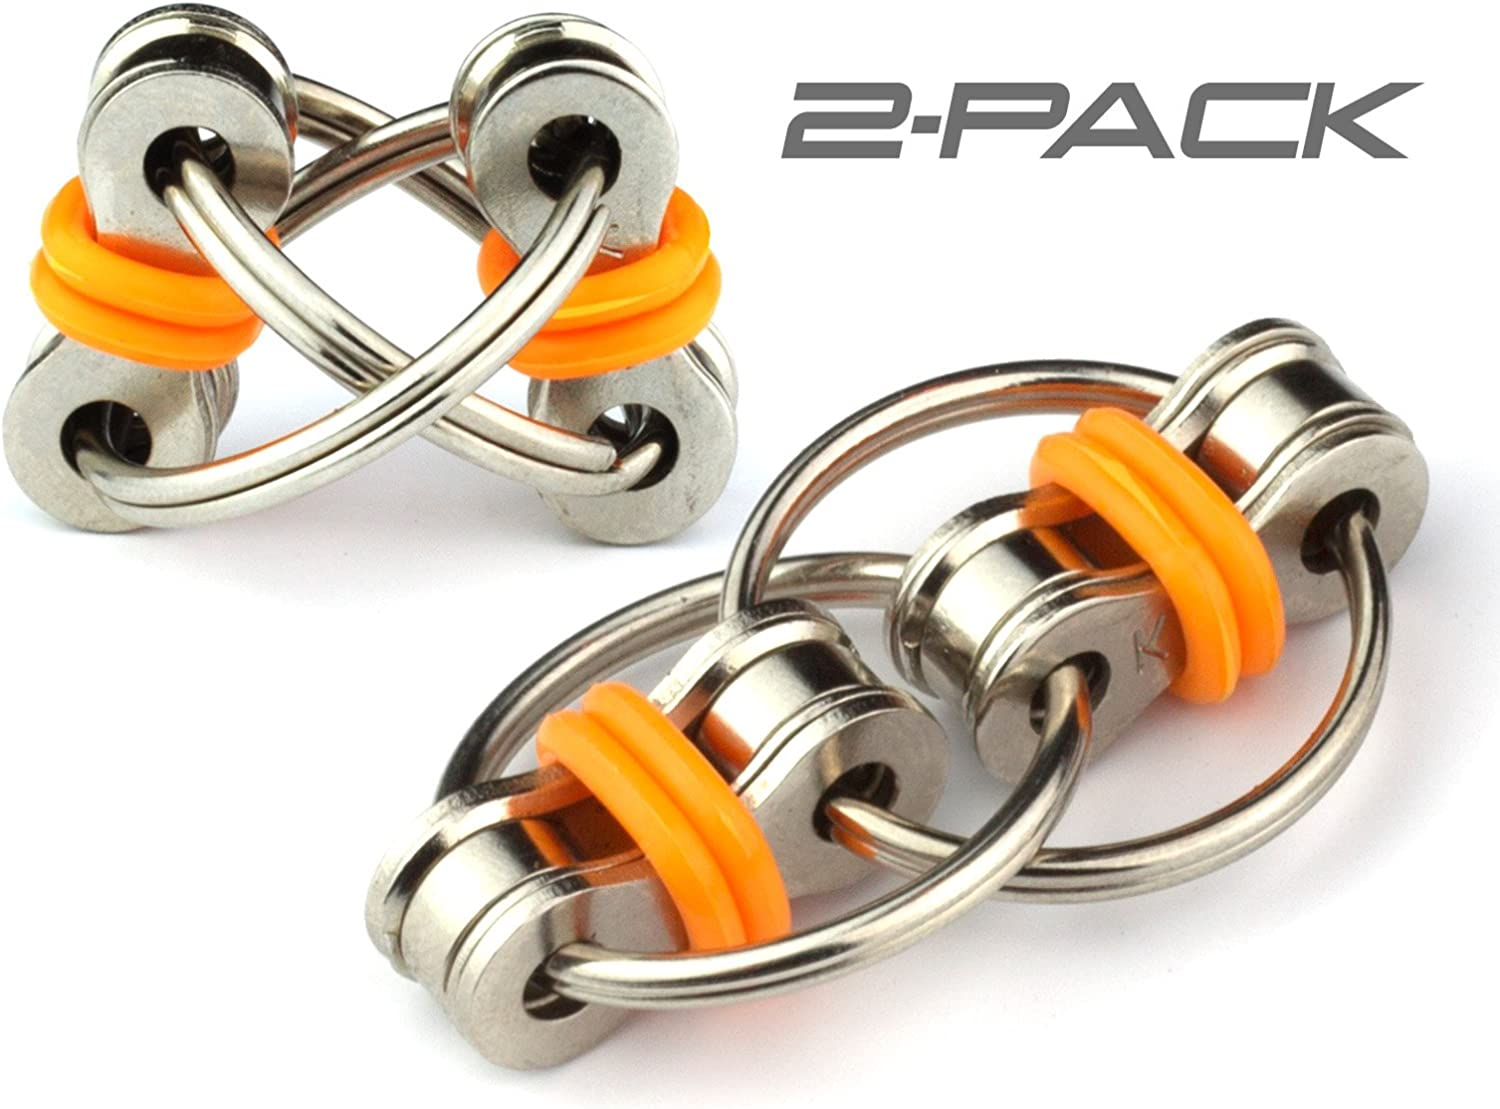 Tom's Fidgets Flippy Chain Fidget Toy Perfect for ADHD, Anxiety, and Autism - Bike Chain Fidget Stress Reducer for Adults and Kids (Orange (2 Pack))